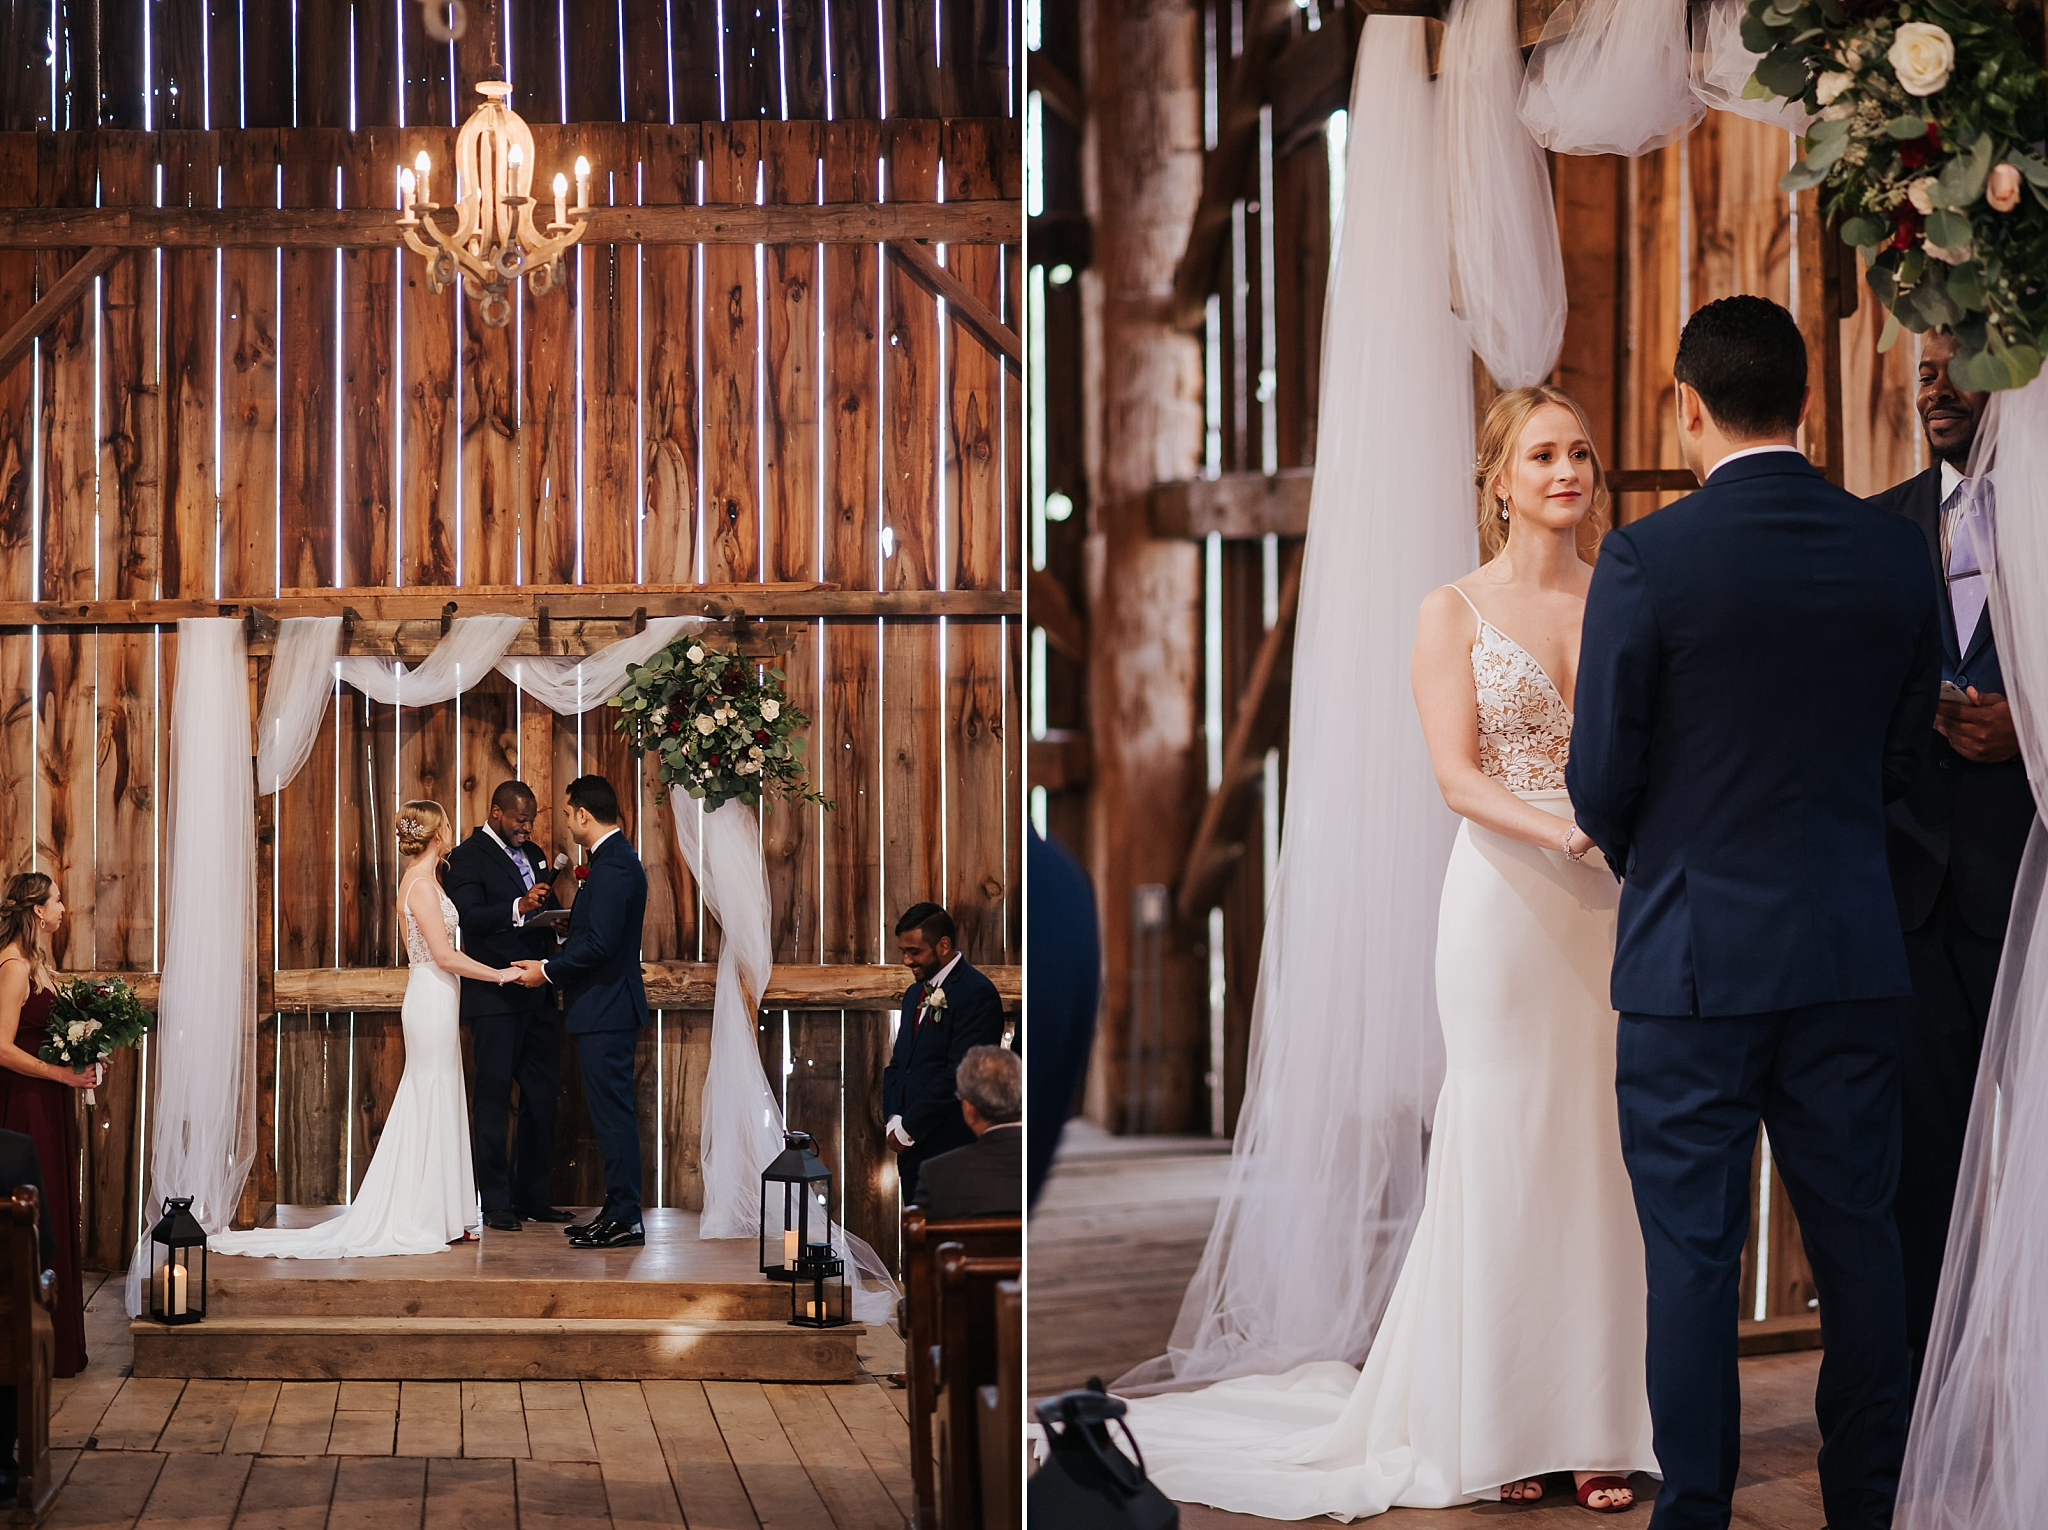 Waterstone Estate & Farms Wedding - ceremony in the barn